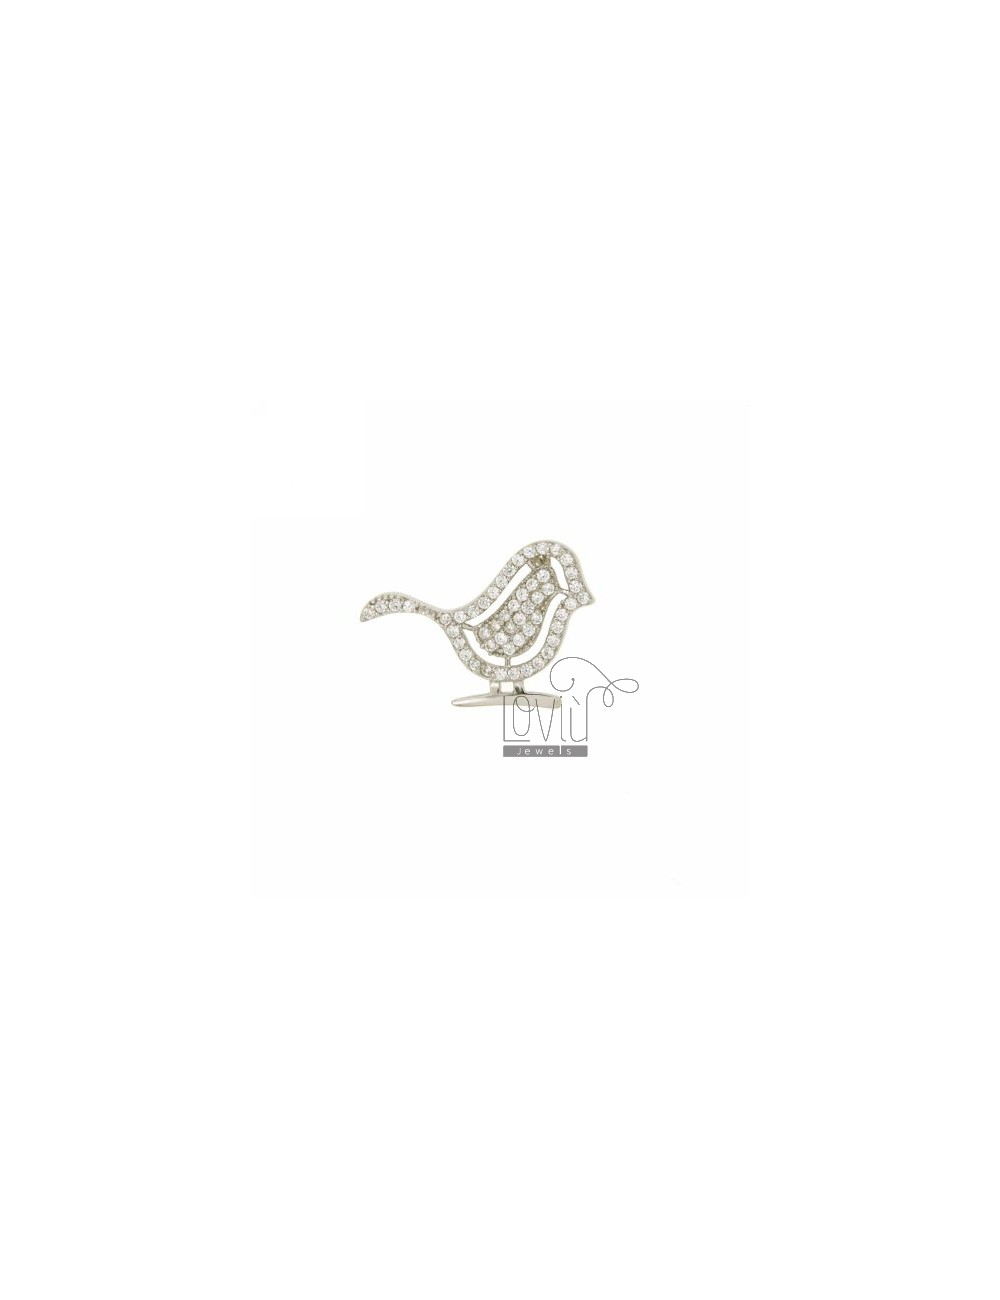 PENDANT CHICK IN AG TIT MM 17X24 n ° 925 ‰ AND ZIRCONIA